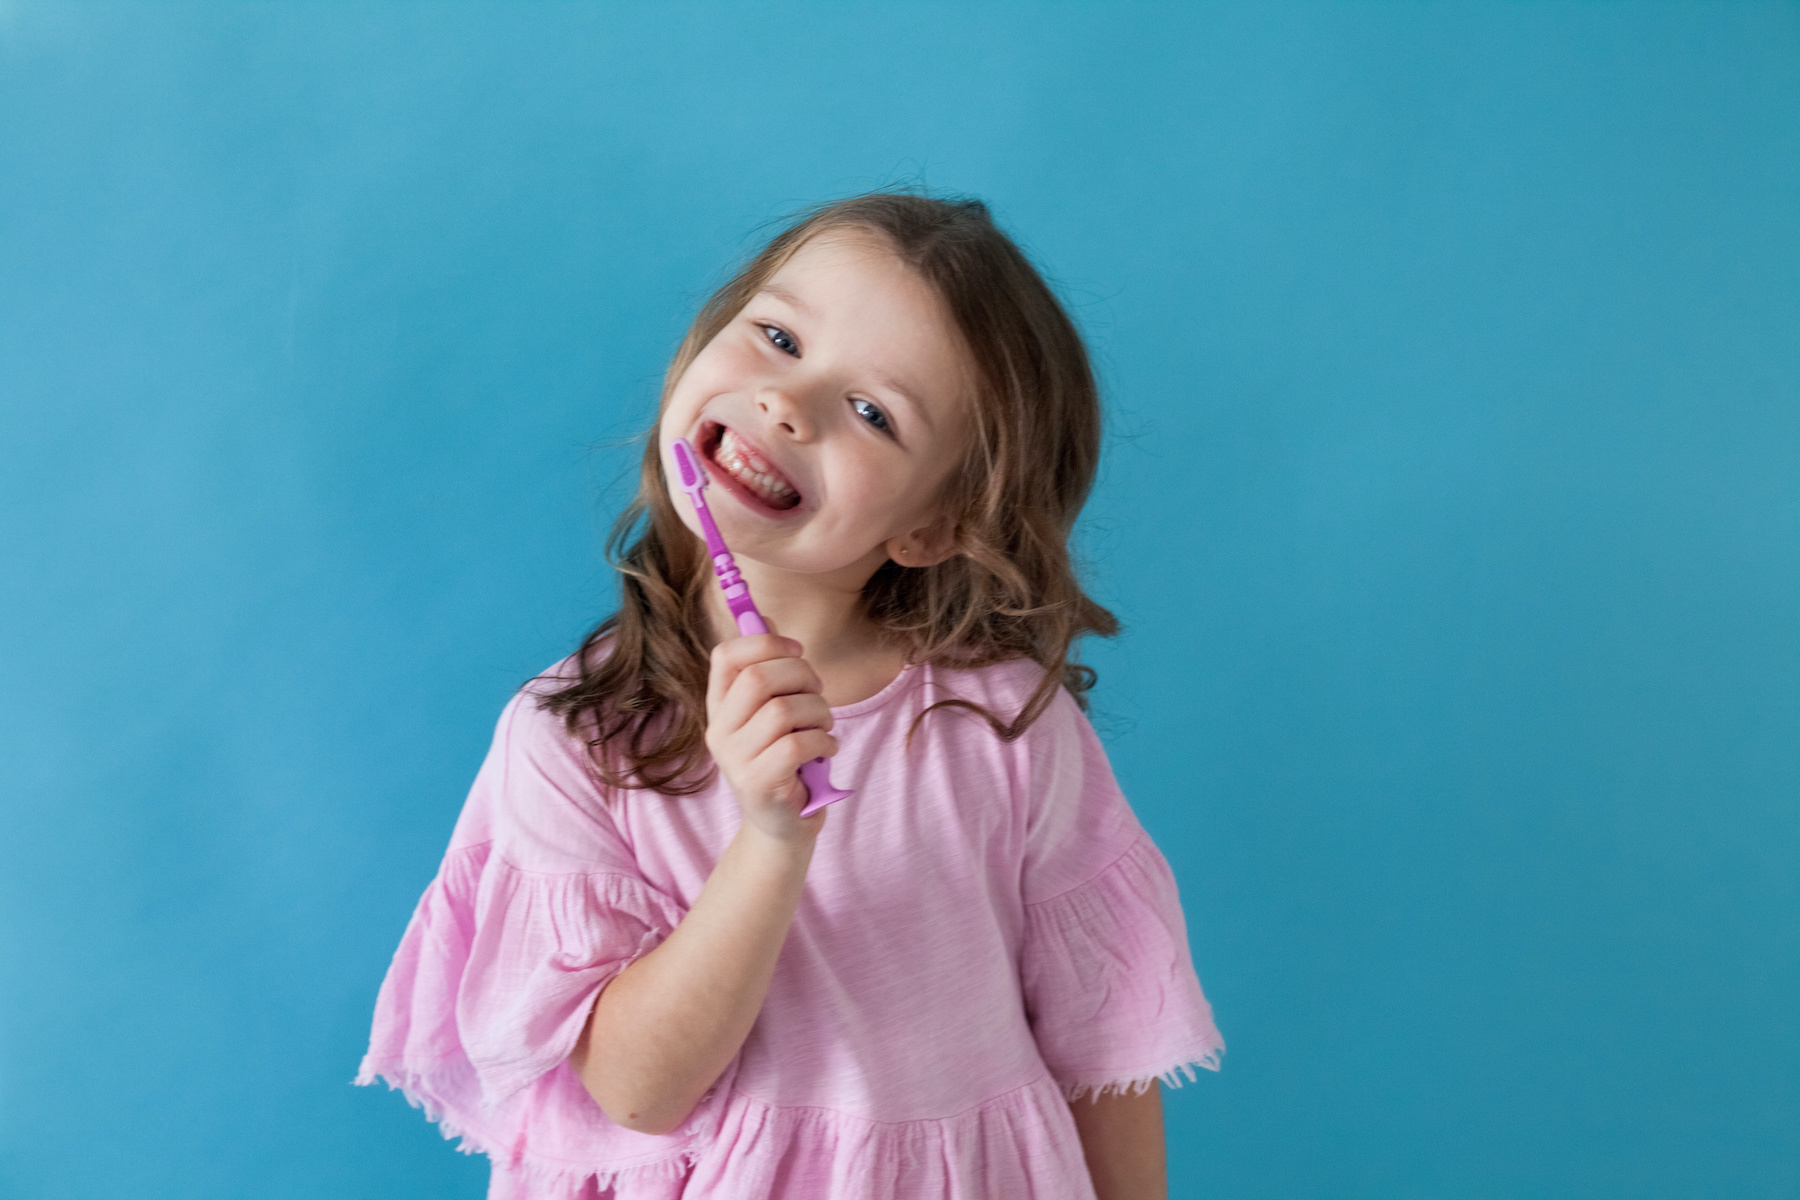 The Importance Of Modeling Good Dental Hygiene For Your Kids